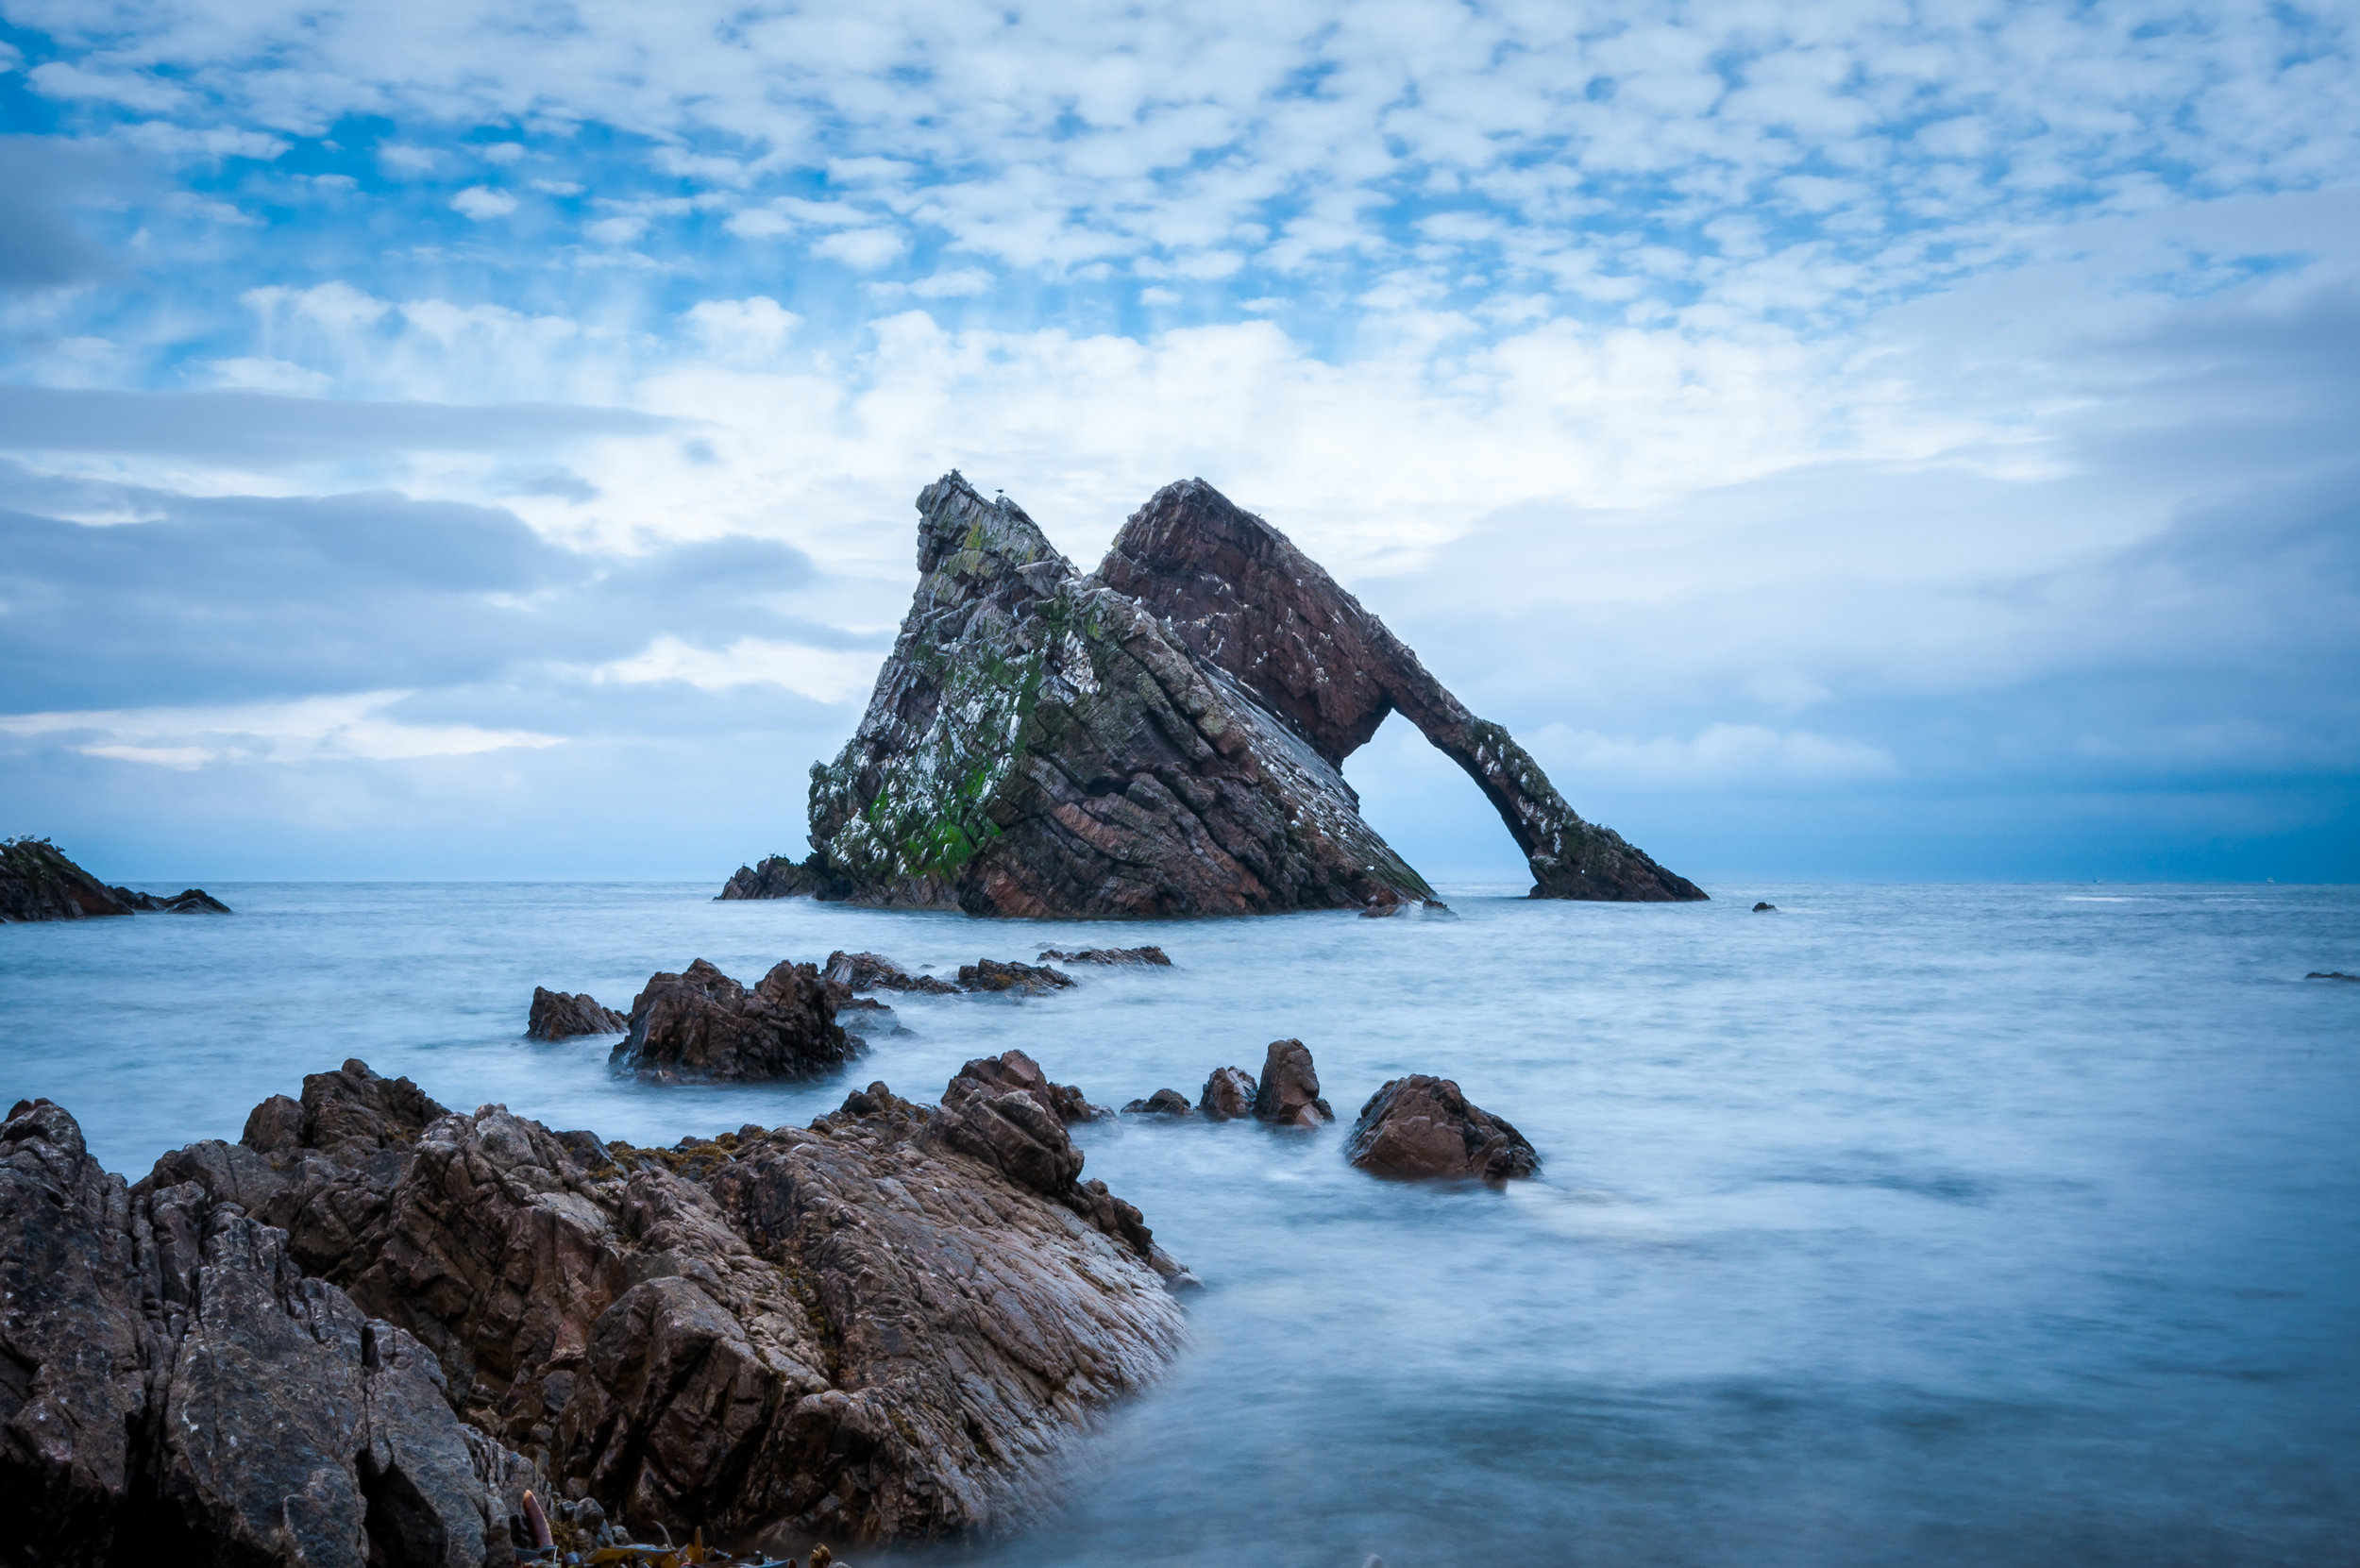 Beautiful rock formation on the north-east coast of Scotland. Again using the Lee Little Stopper here. The sky was so bright, I could have really done with the Big Stopper!